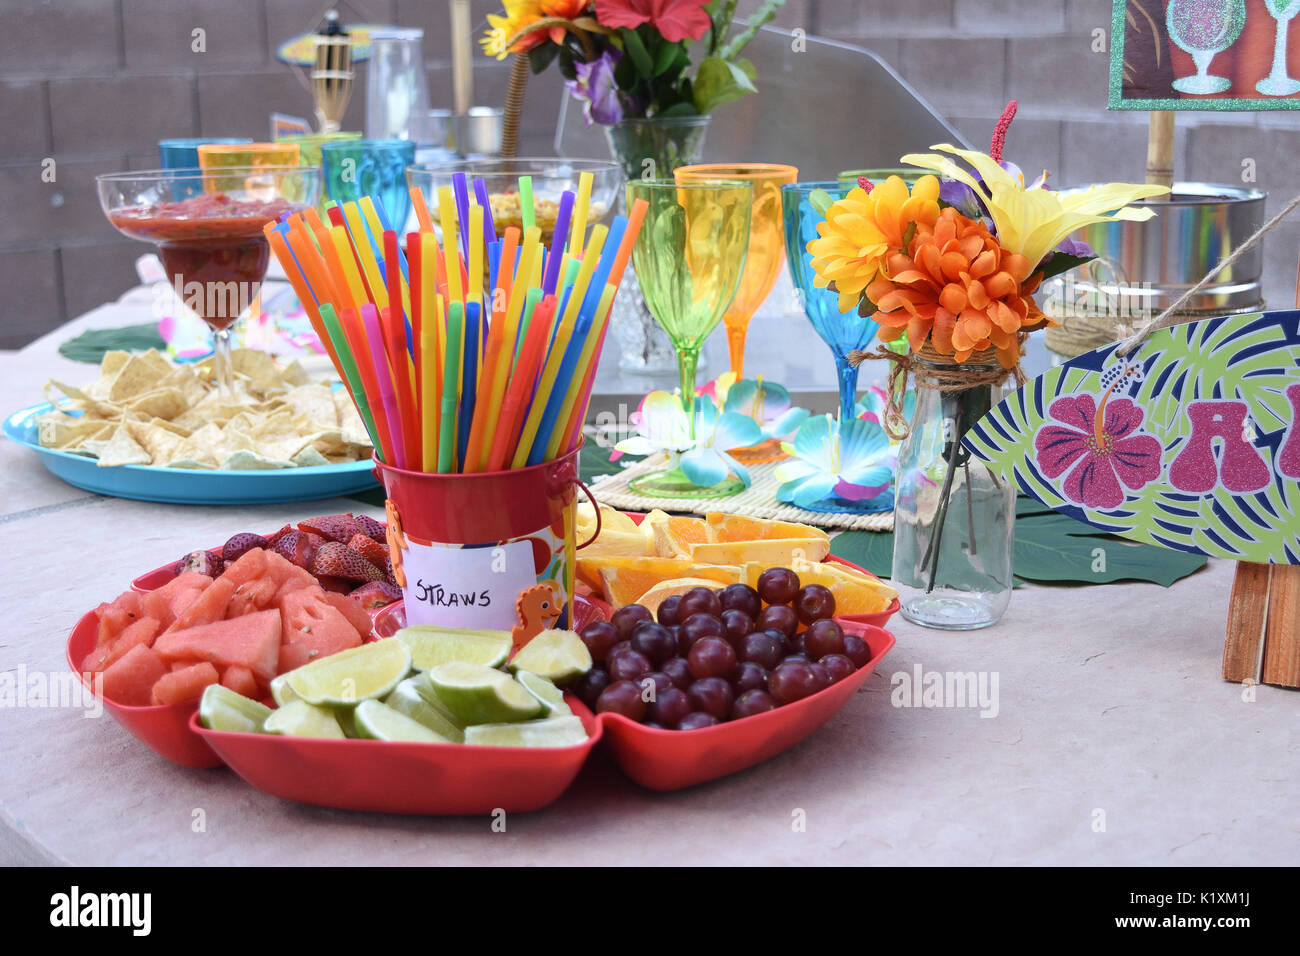 Hawaiian Tiki Bar themed Party Dekoration Stockfoto, Bild: 156094446 ...